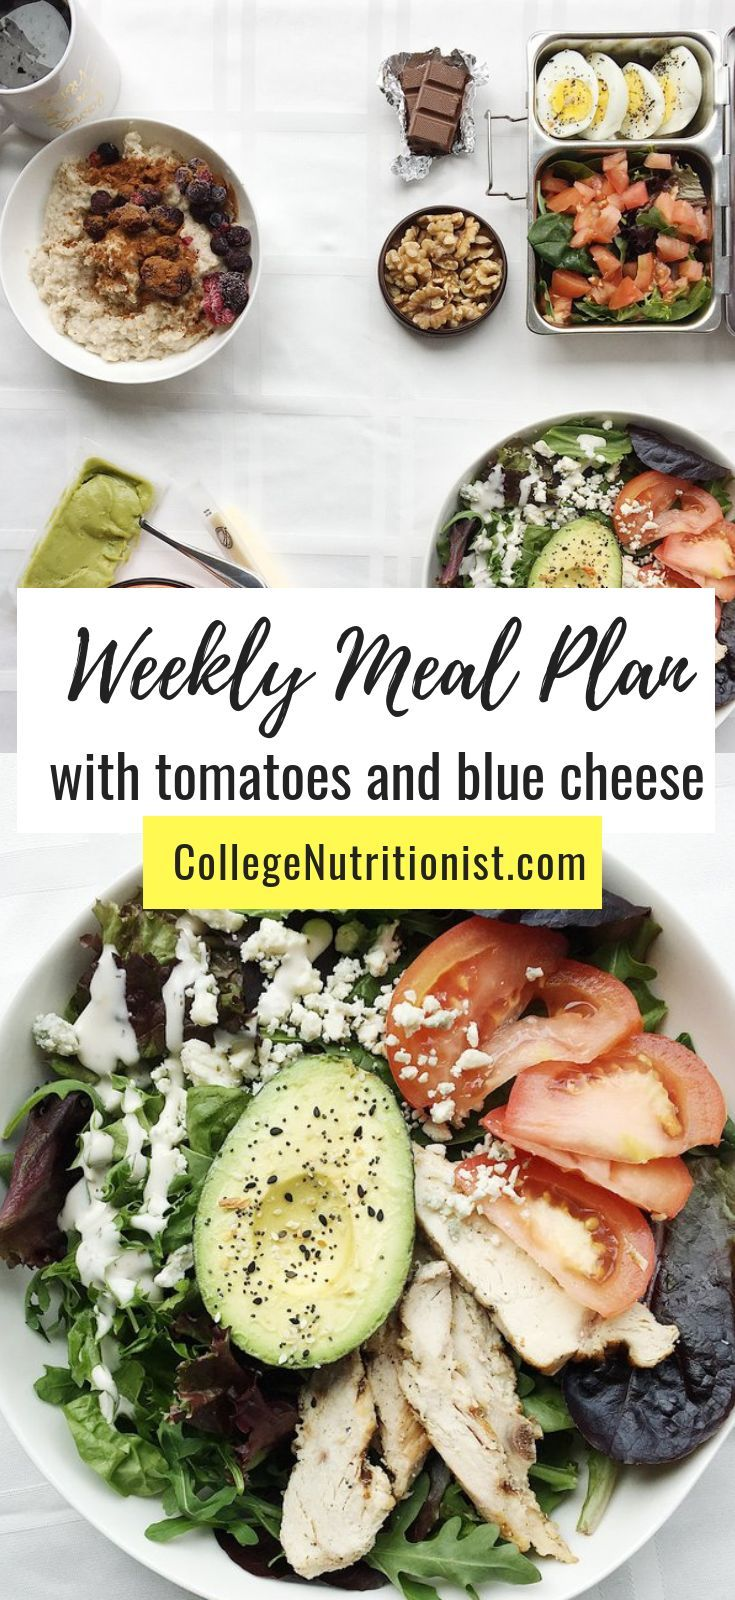 recipe: is blue cheese good for weight loss [19]